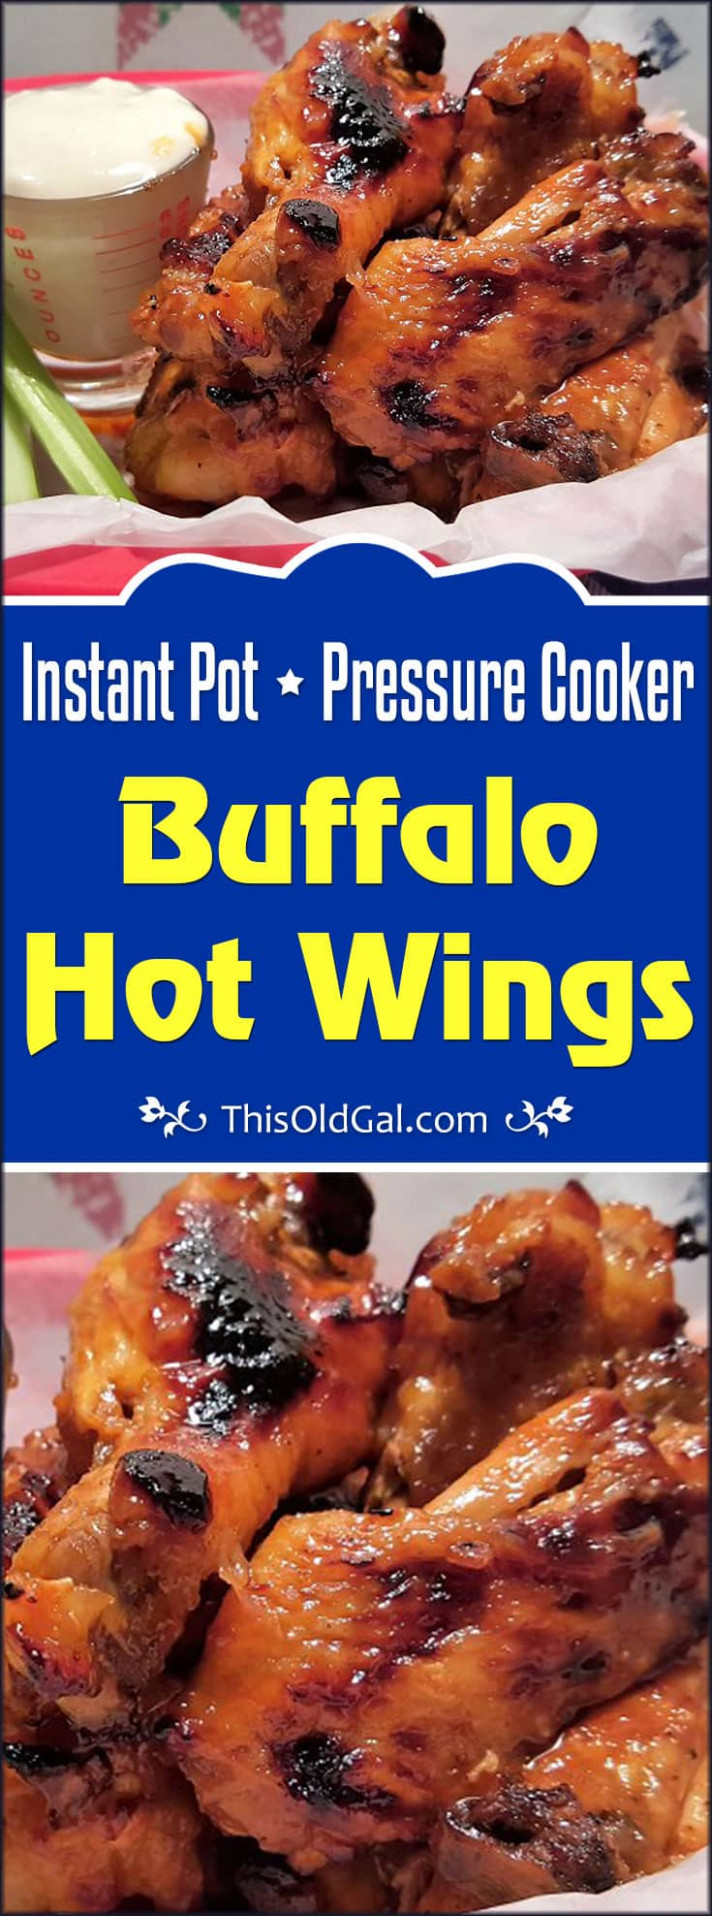 Pressure Cooker Buffalo Hot Wings | This Old Gal - Pressure Cooker Xl Recipes Chicken Wings